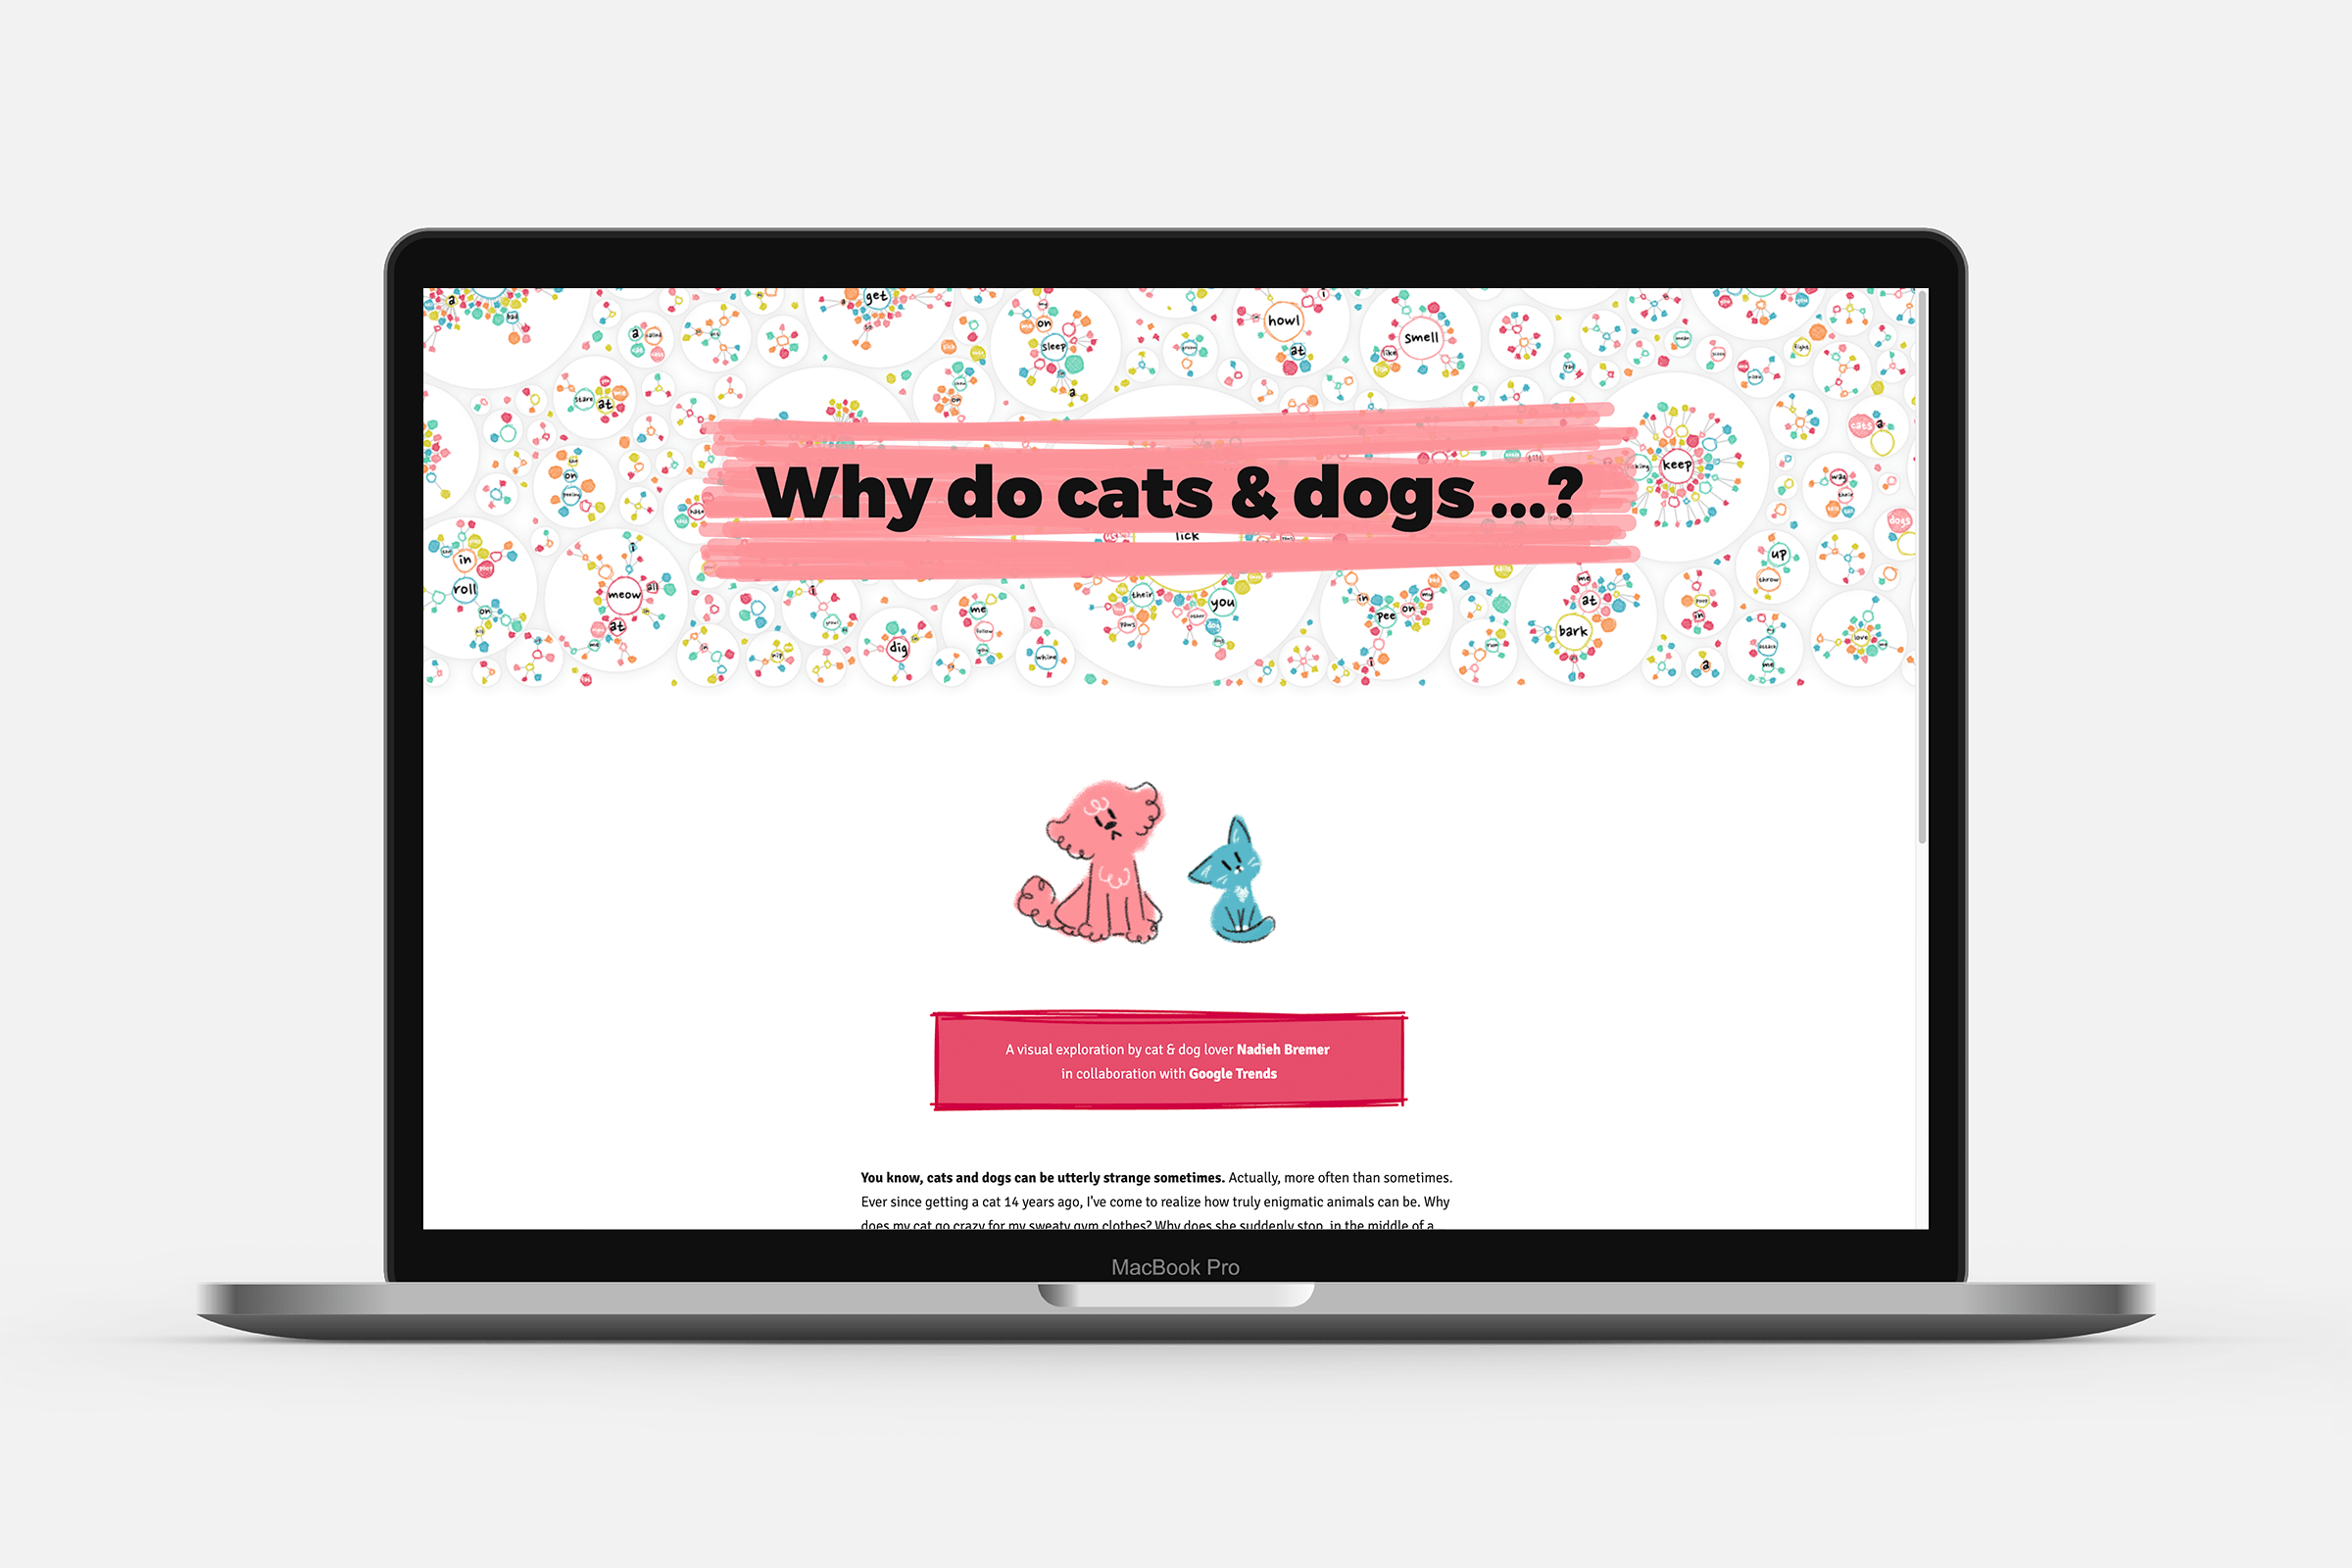 The starting page of the project that lets you choose between cats and dogs